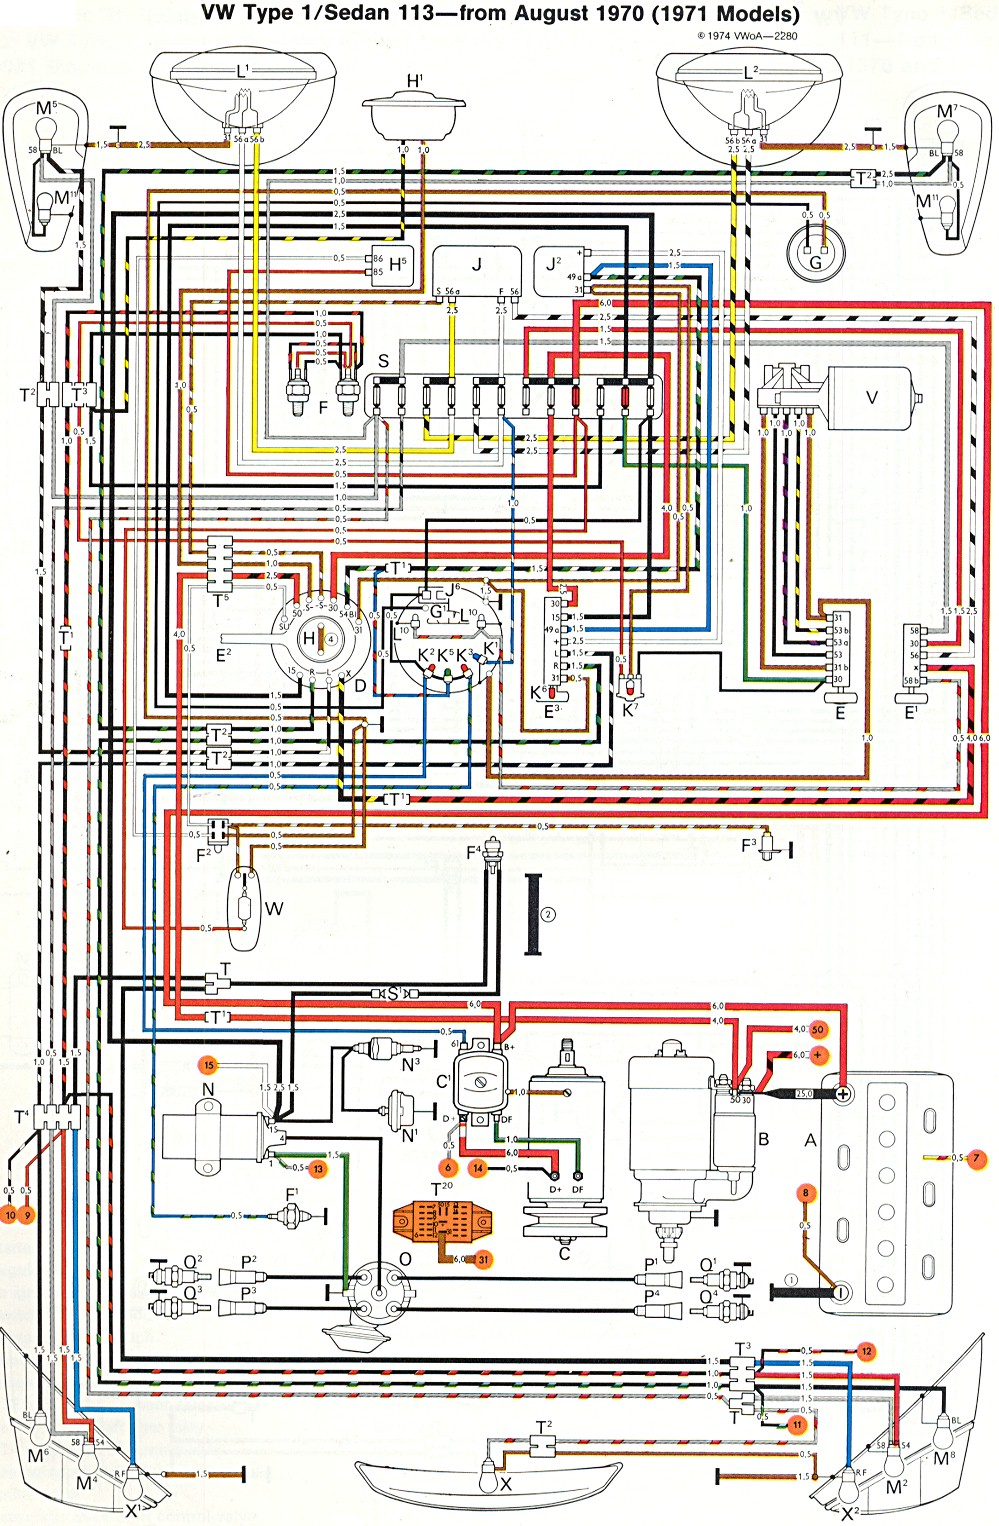 bug_super_71 1971 super beetle wiring diagram thegoldenbug com 1957 vw bug wiring diagram at edmiracle.co